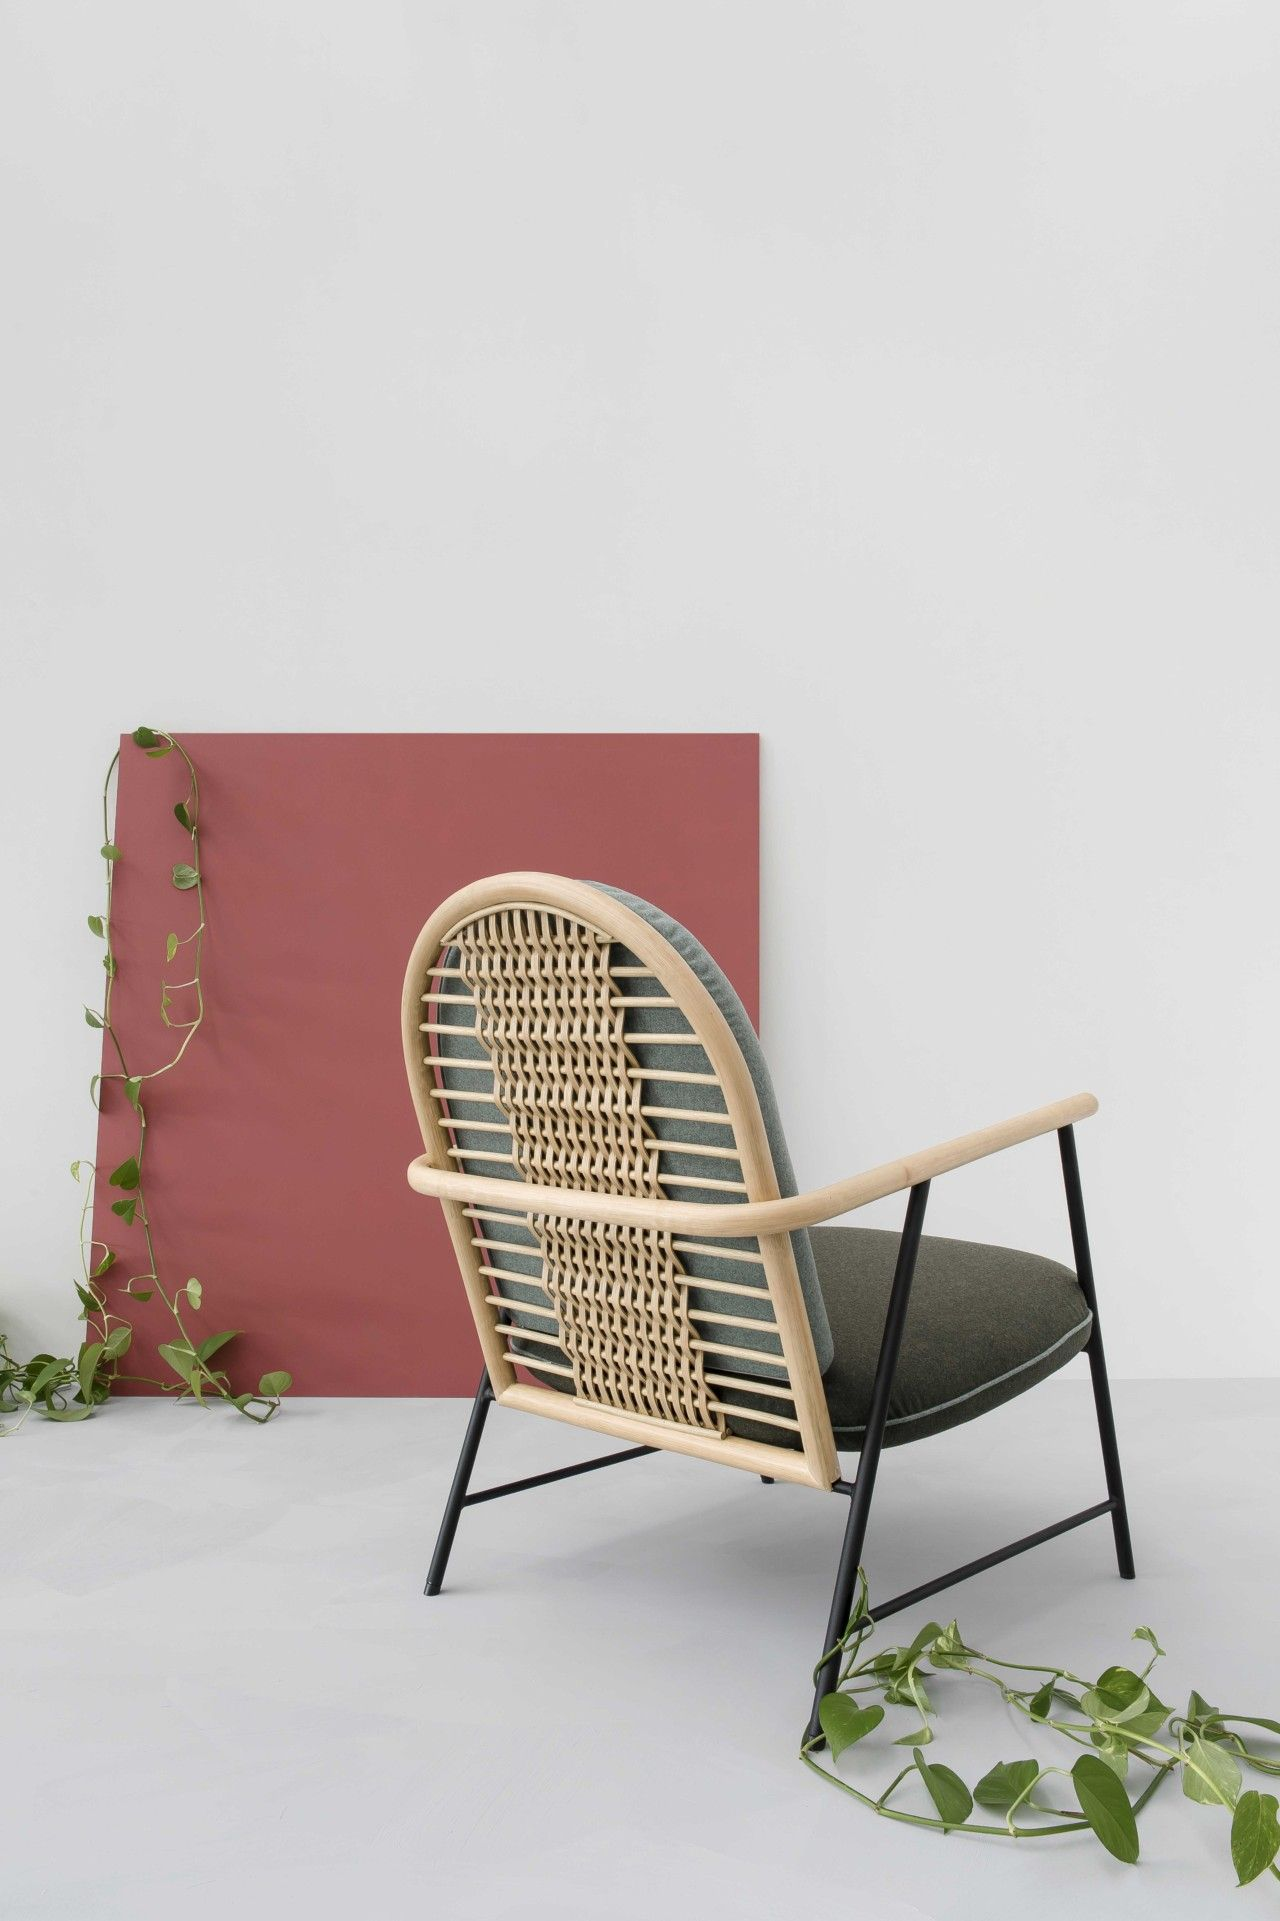 A Collection By Sep Verboom That Consists Of A Lounge Chair And Shelves,  Both Designed